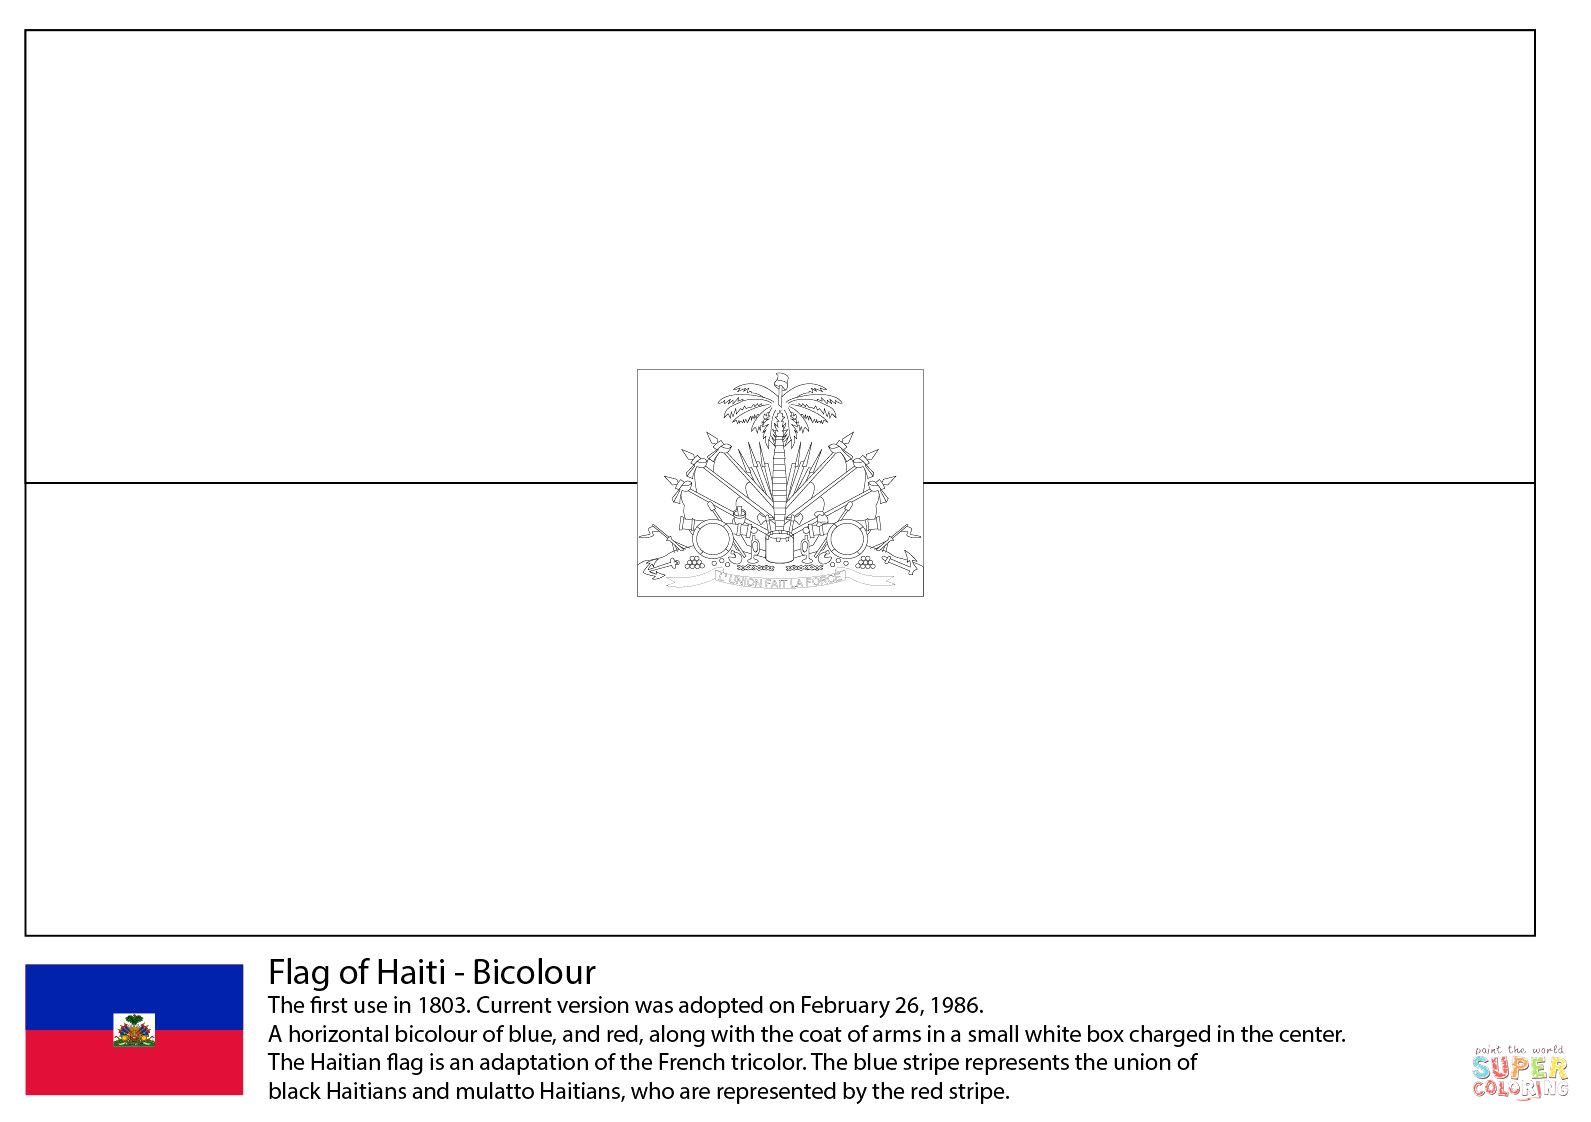 Ecuador Flag Coloring Page For 2019 Http Www Wallpaperartdesignhd Us Ecuador Flag Coloring Page For 2019 47590 Flag Coloring Pages Haiti Flag Haitian Flag